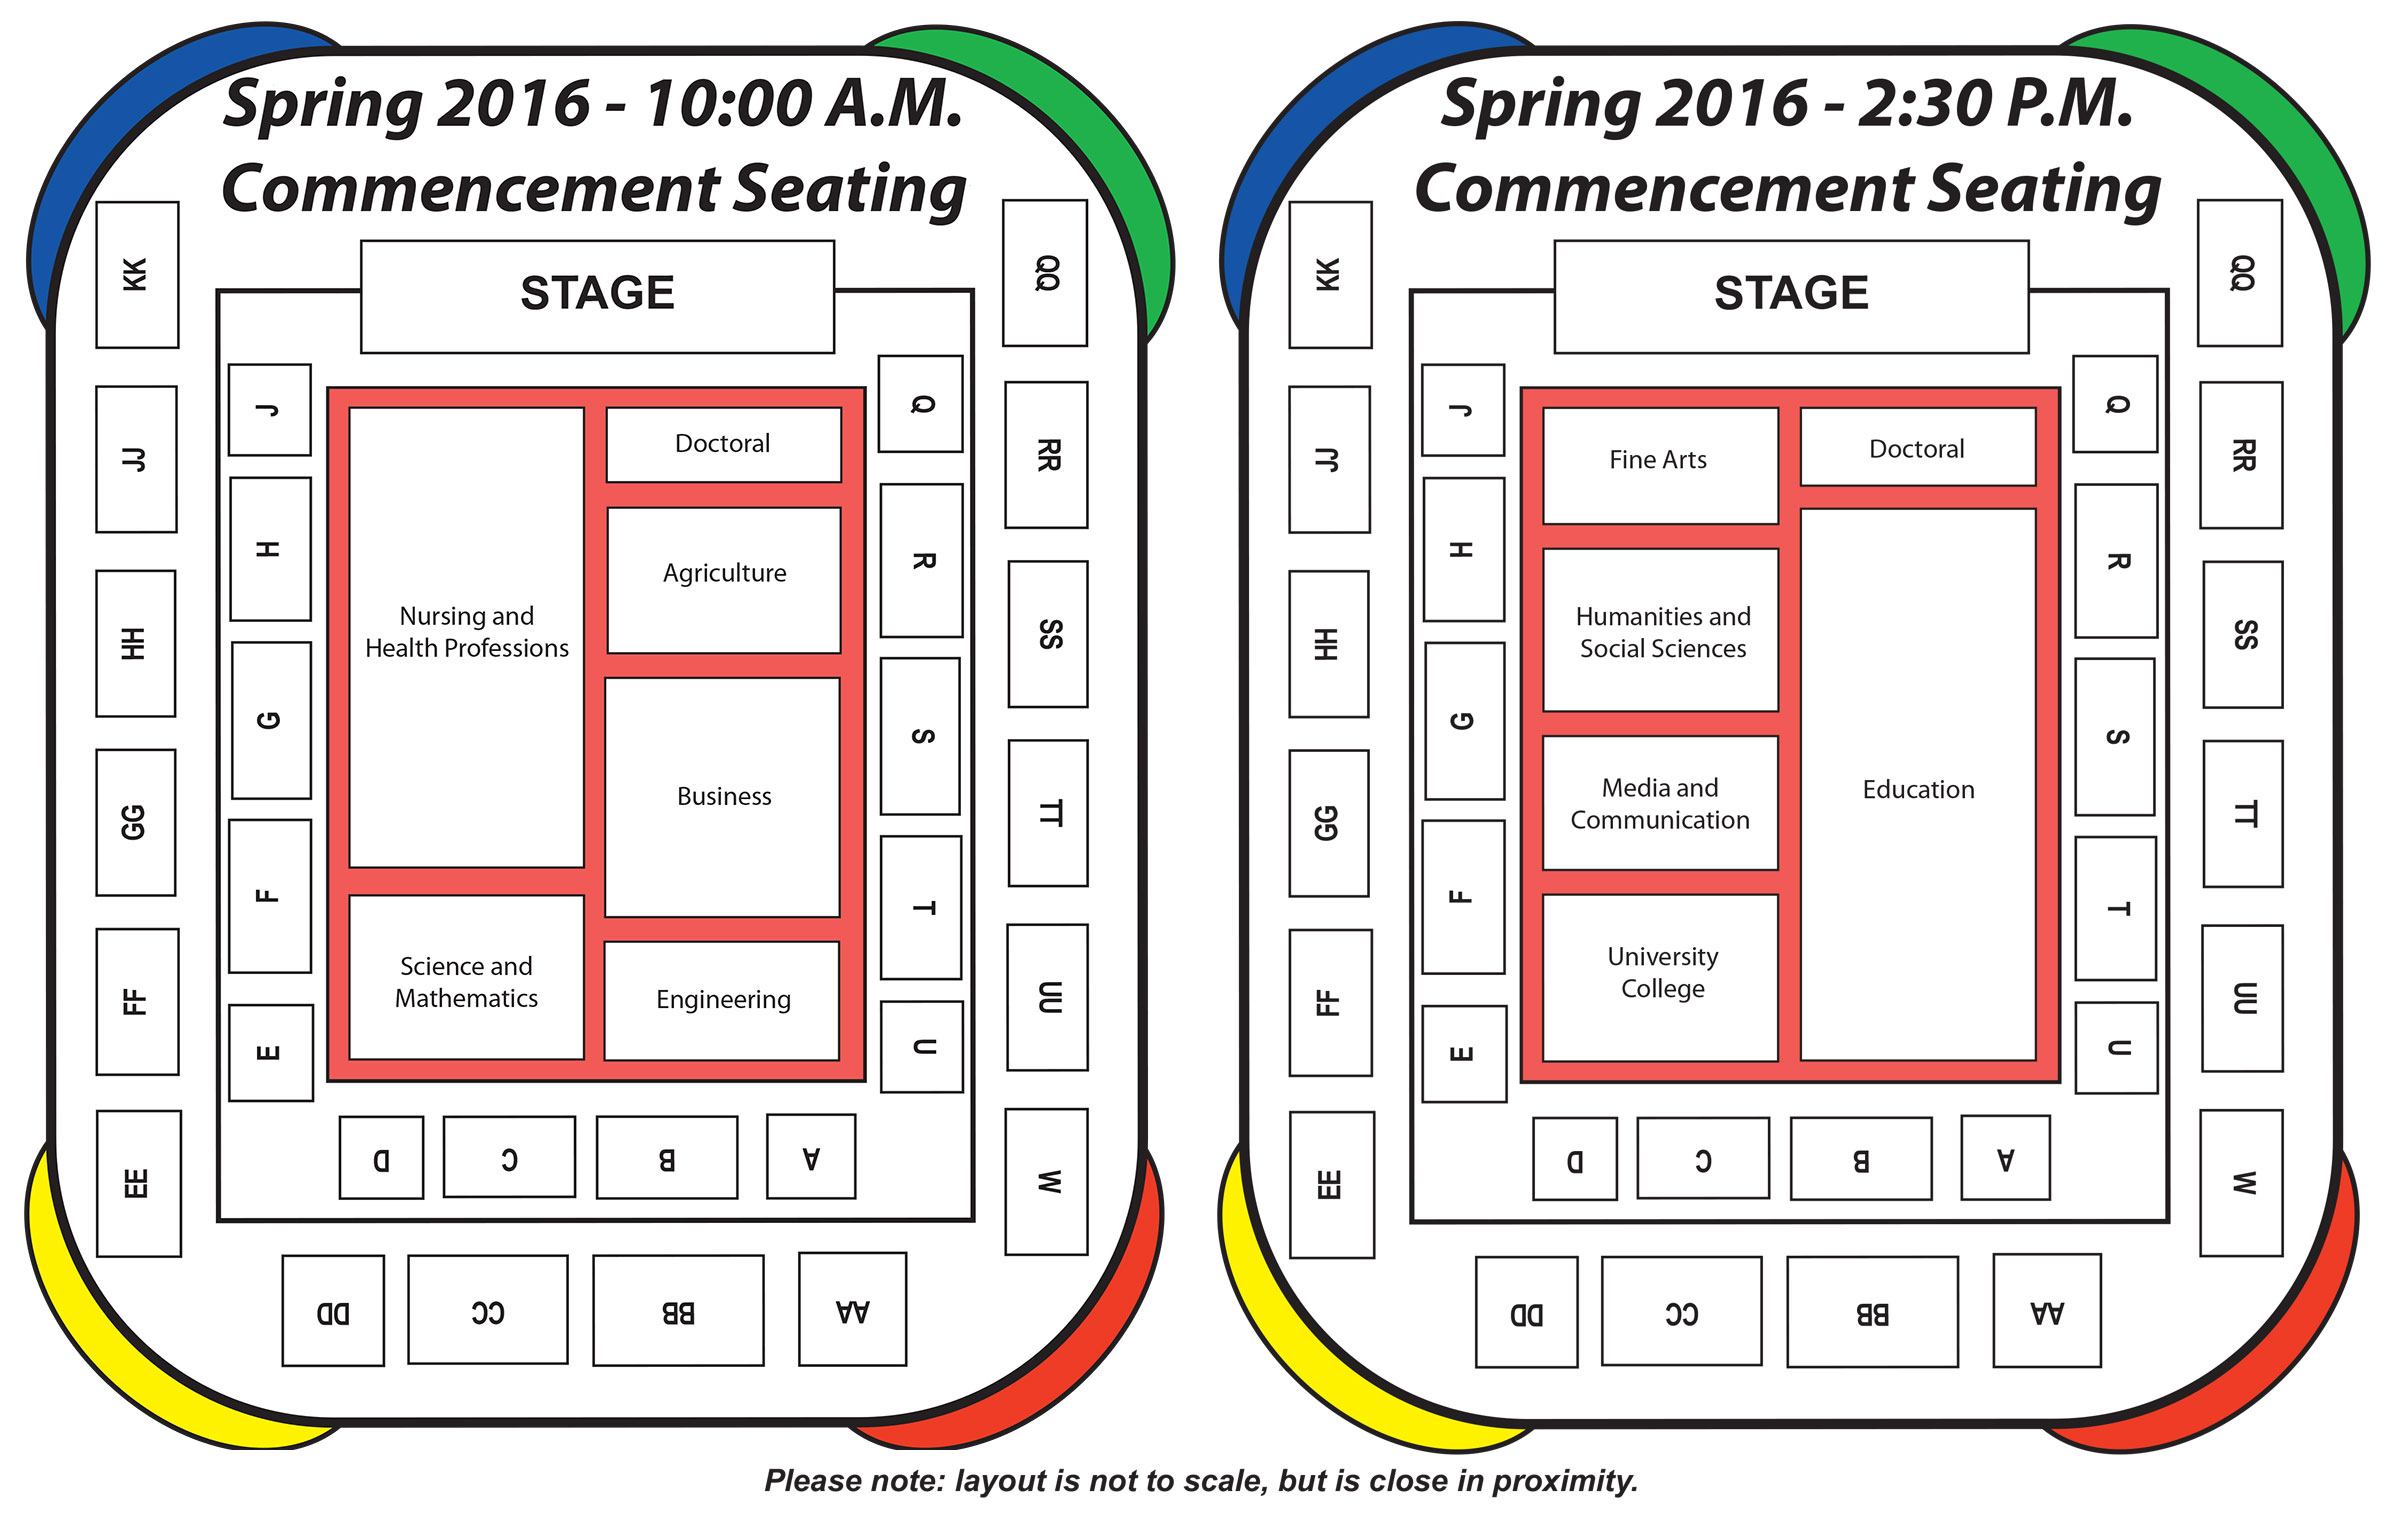 2016 Spring Graduation Seating Chart